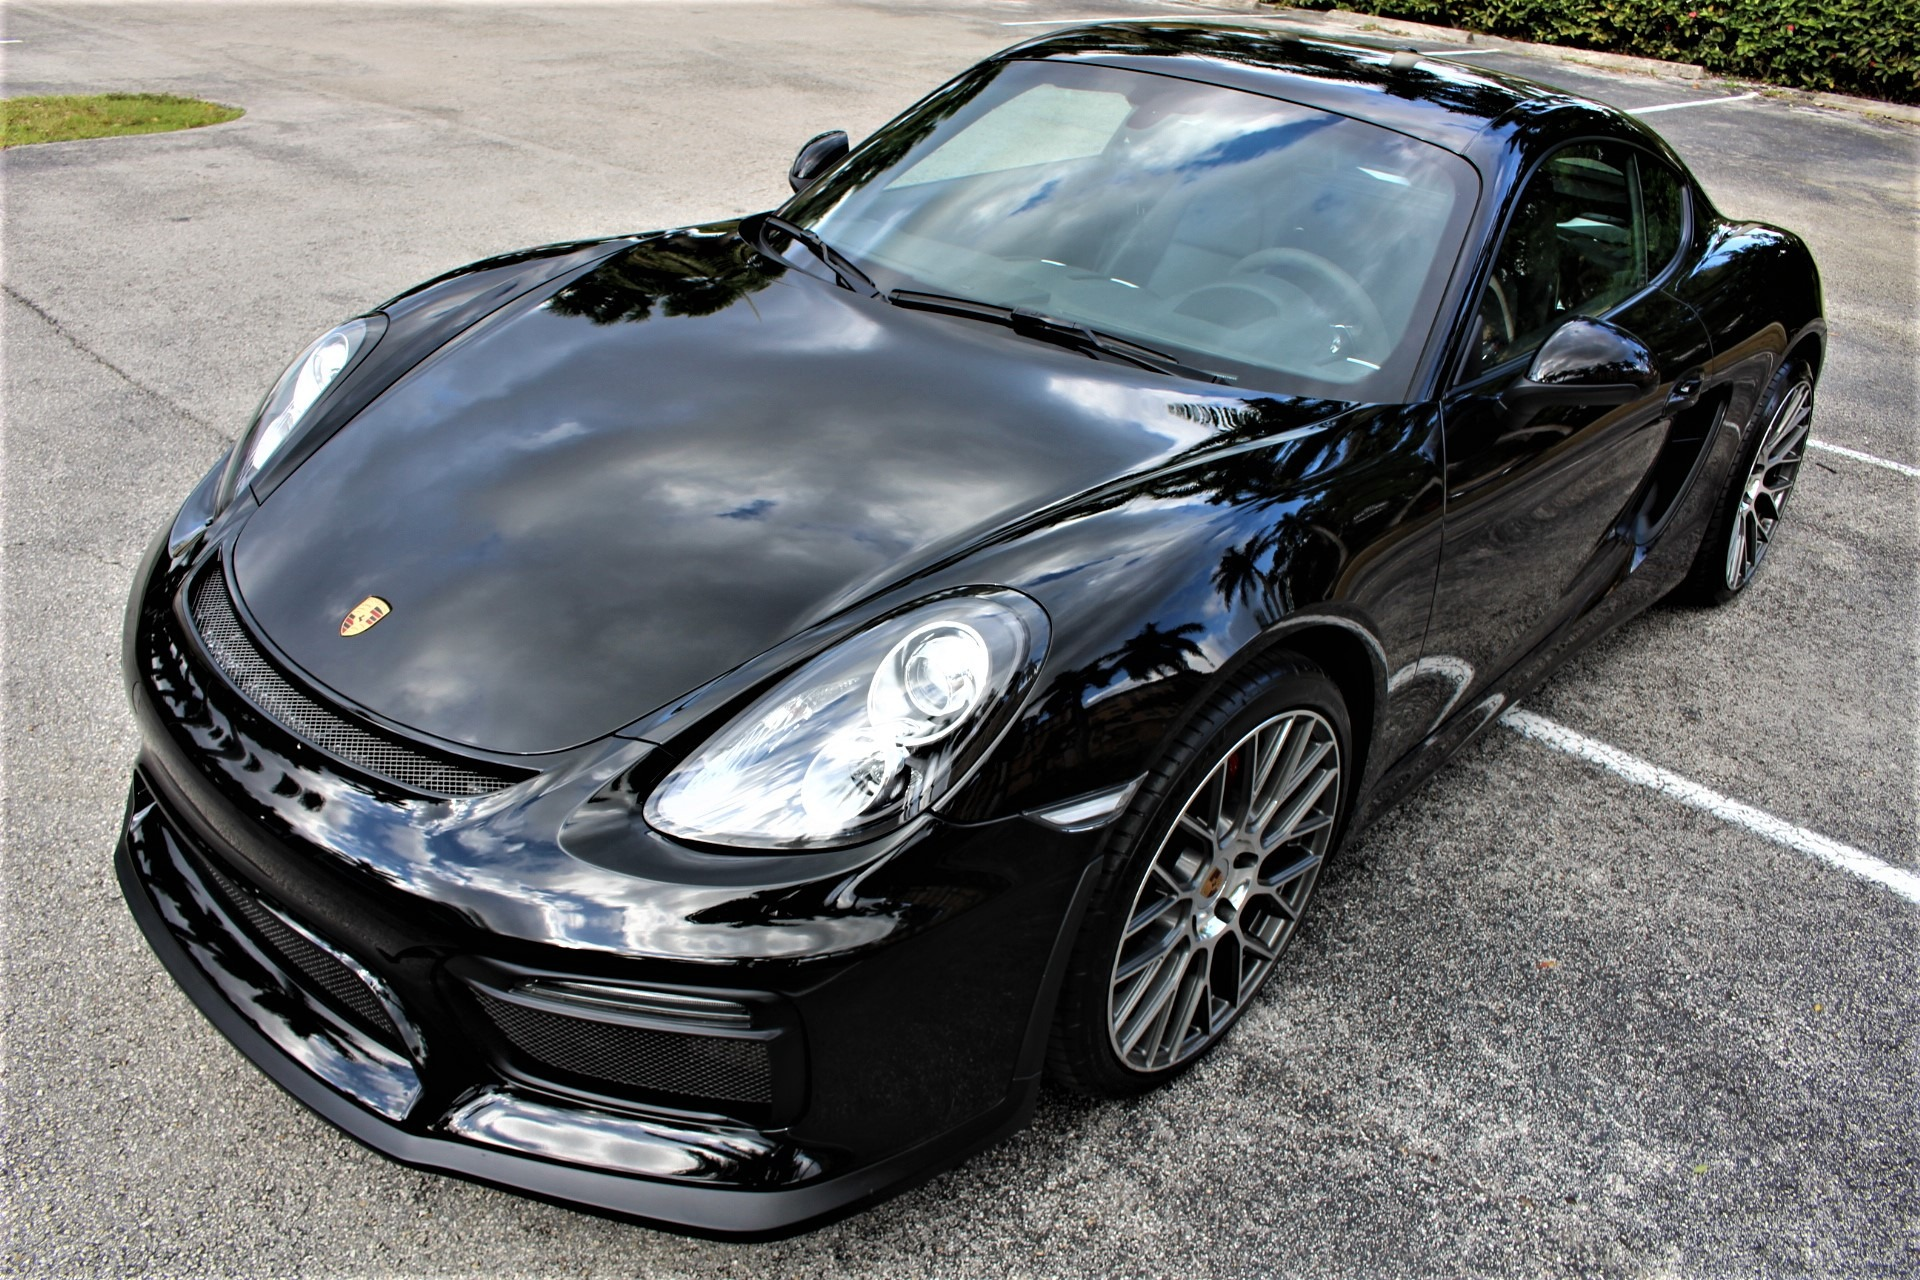 Used 2014 Porsche Cayman for sale Sold at The Gables Sports Cars in Miami FL 33146 2